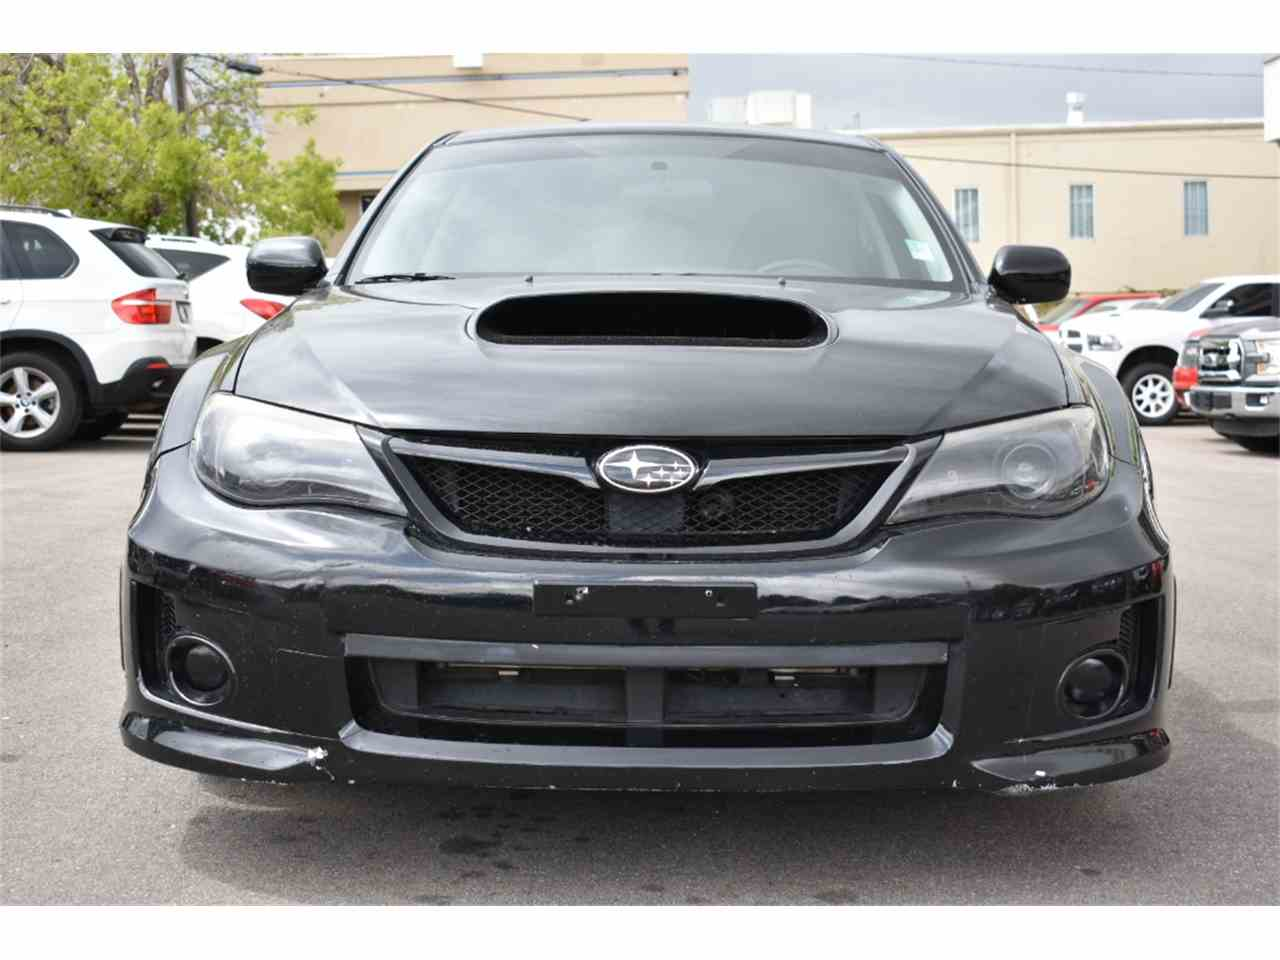 Large Picture of '13 Impreza - LWDJ